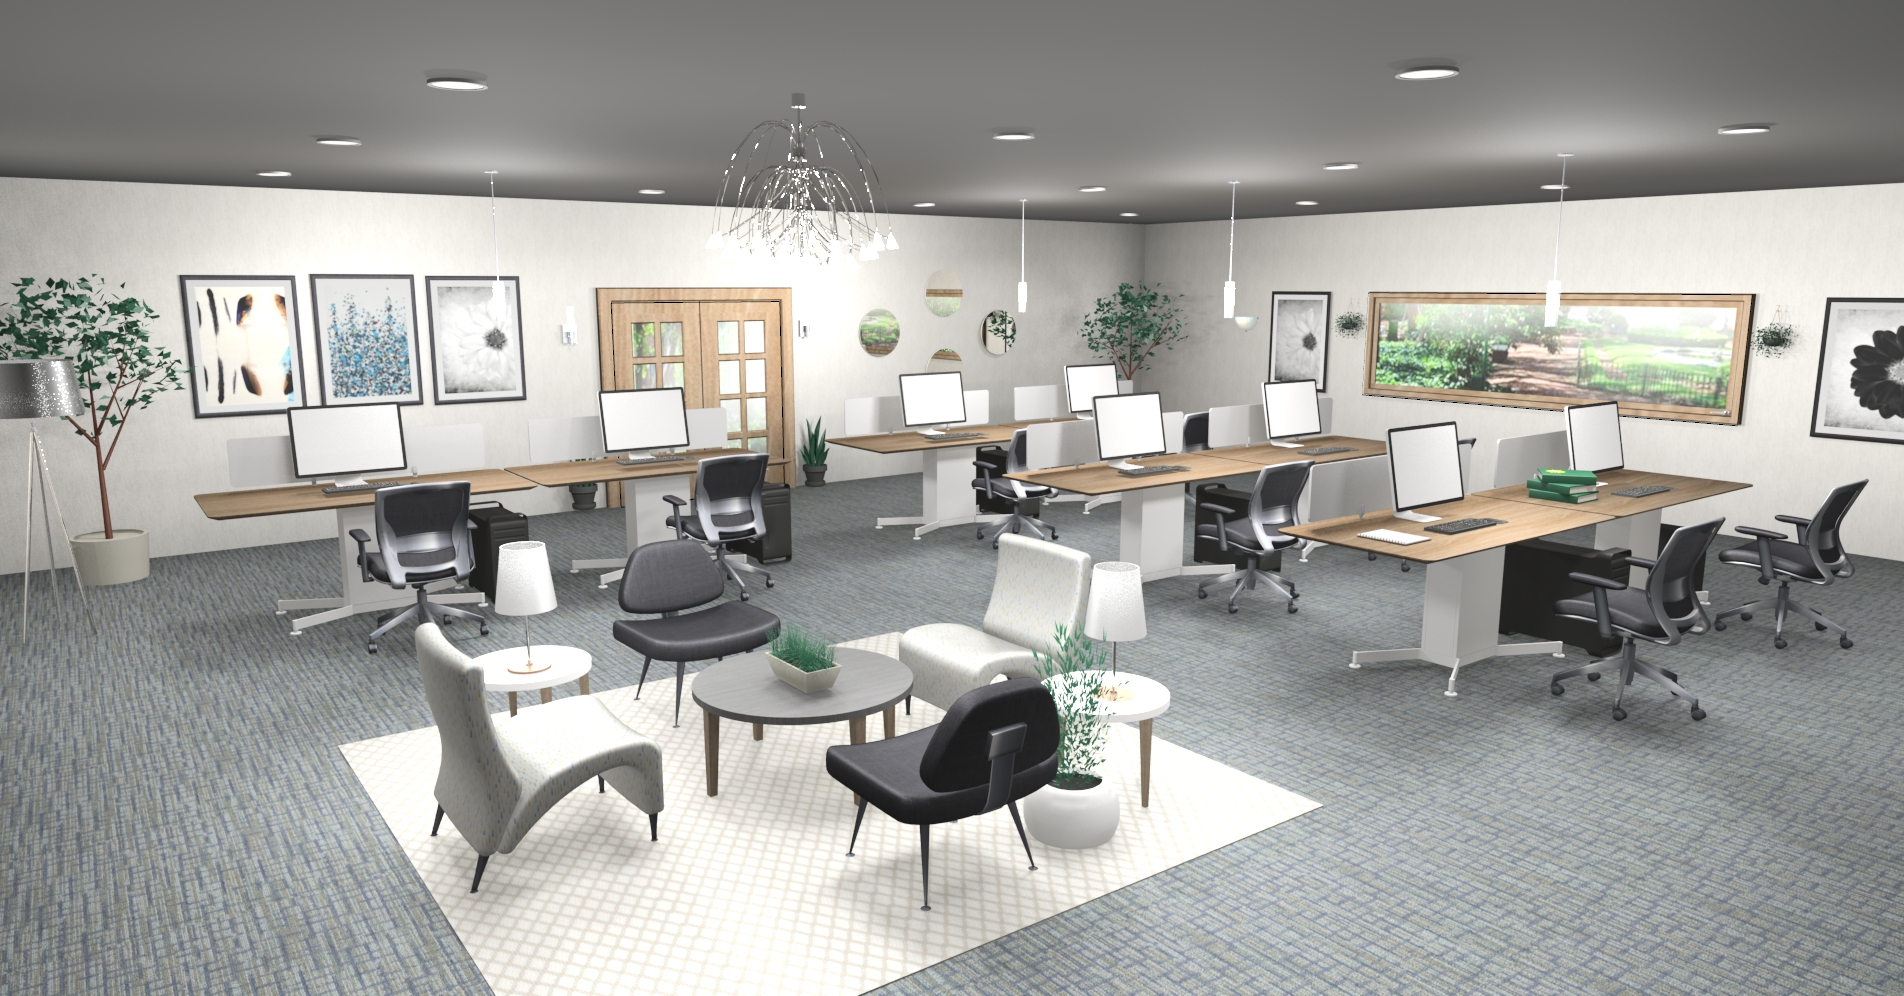 2020 office design trends 2020 for Trendy office design